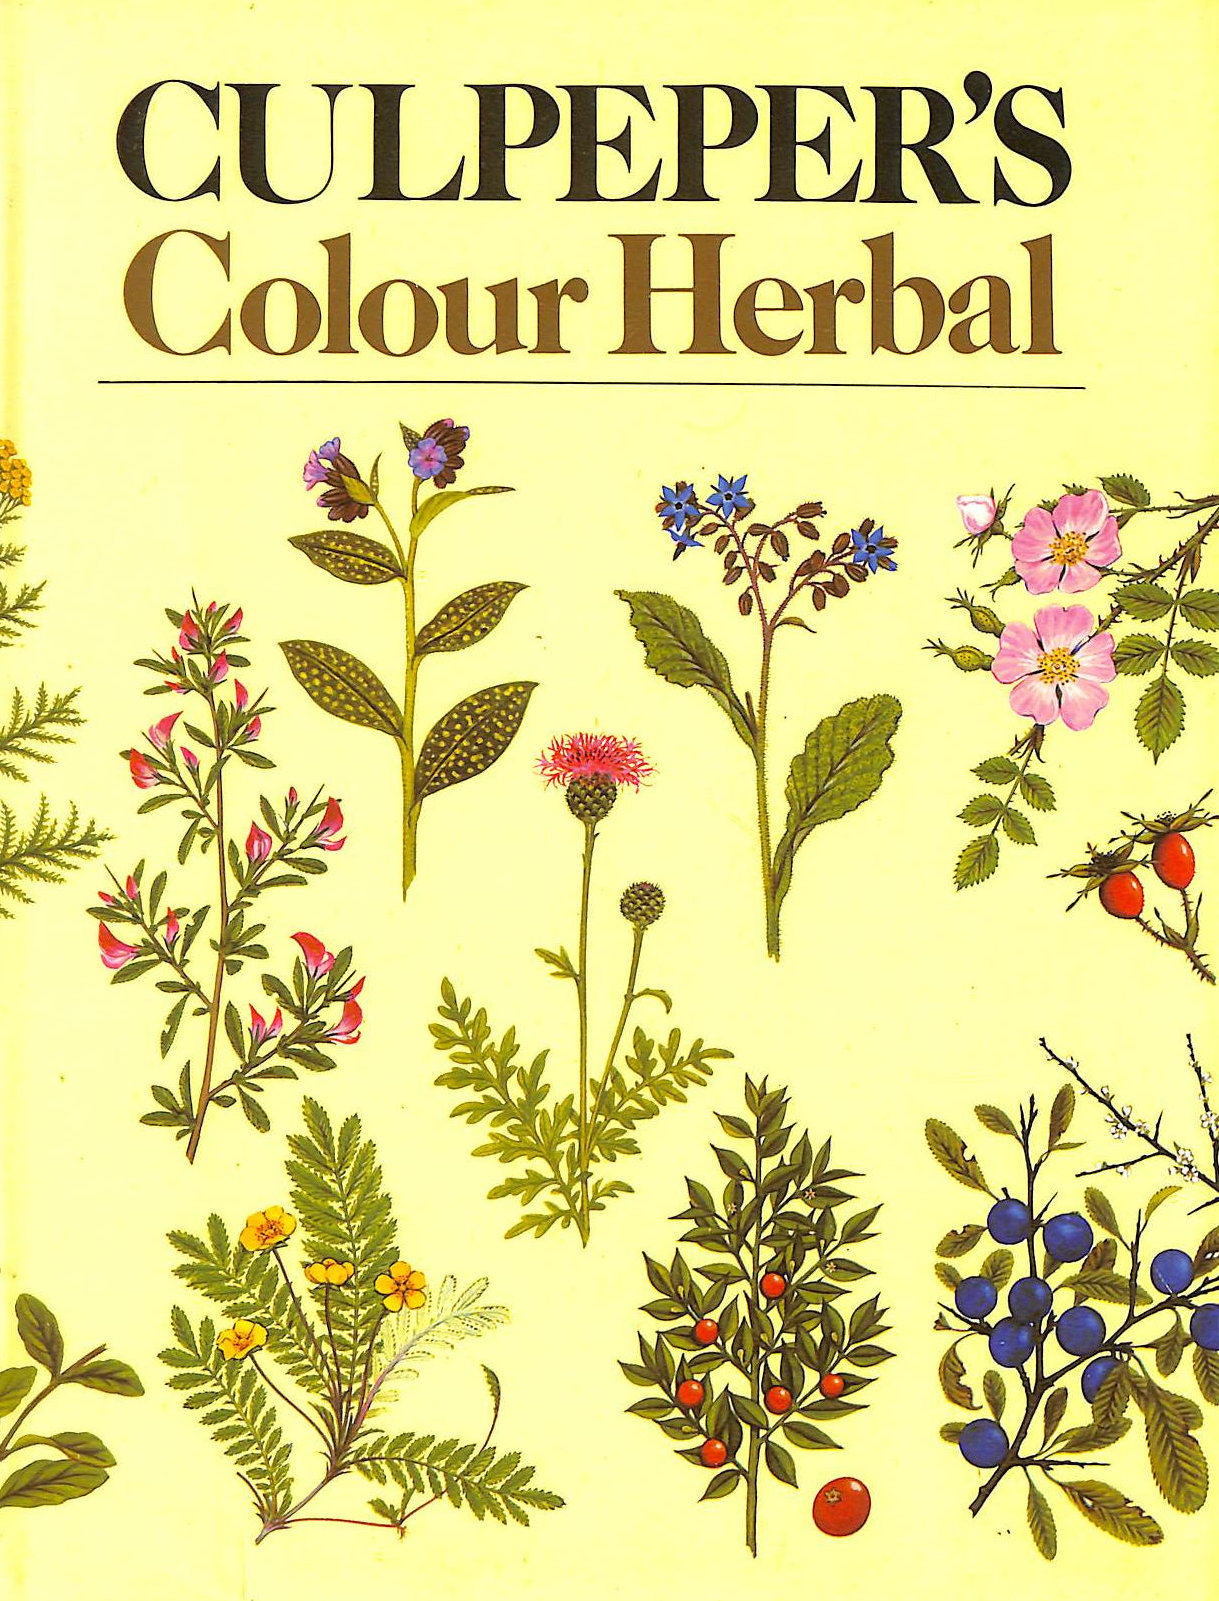 Image for Culpeper's Colour Herbal by Nicholas Culpeper (1983-03-14)